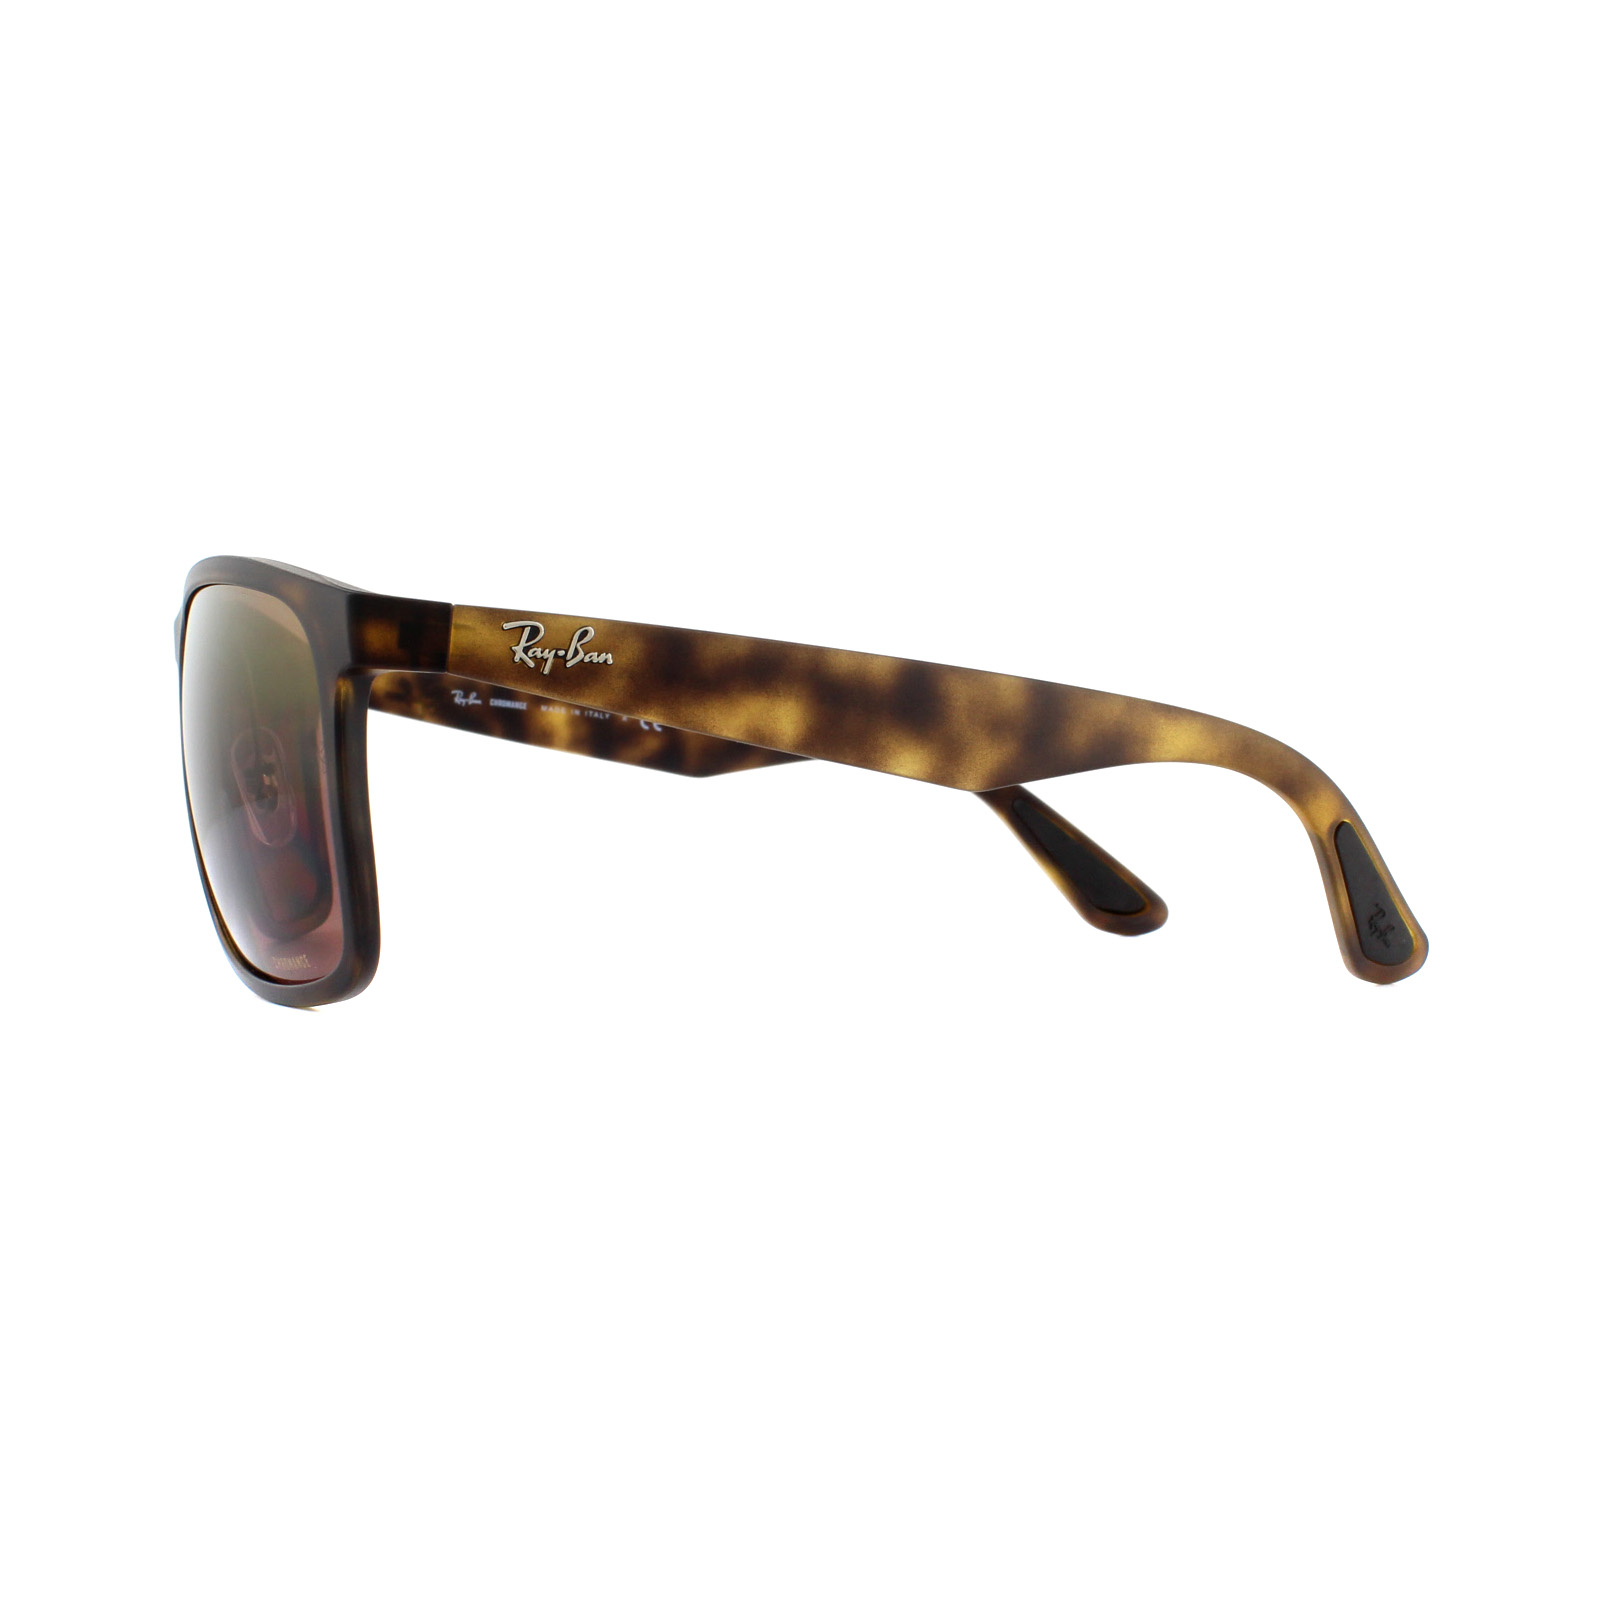 9af66bf8886919 Sentinel Ray-Ban Sunglasses RB4264 894 6B Matte Havana Brown Polarized  Mirror Chromance